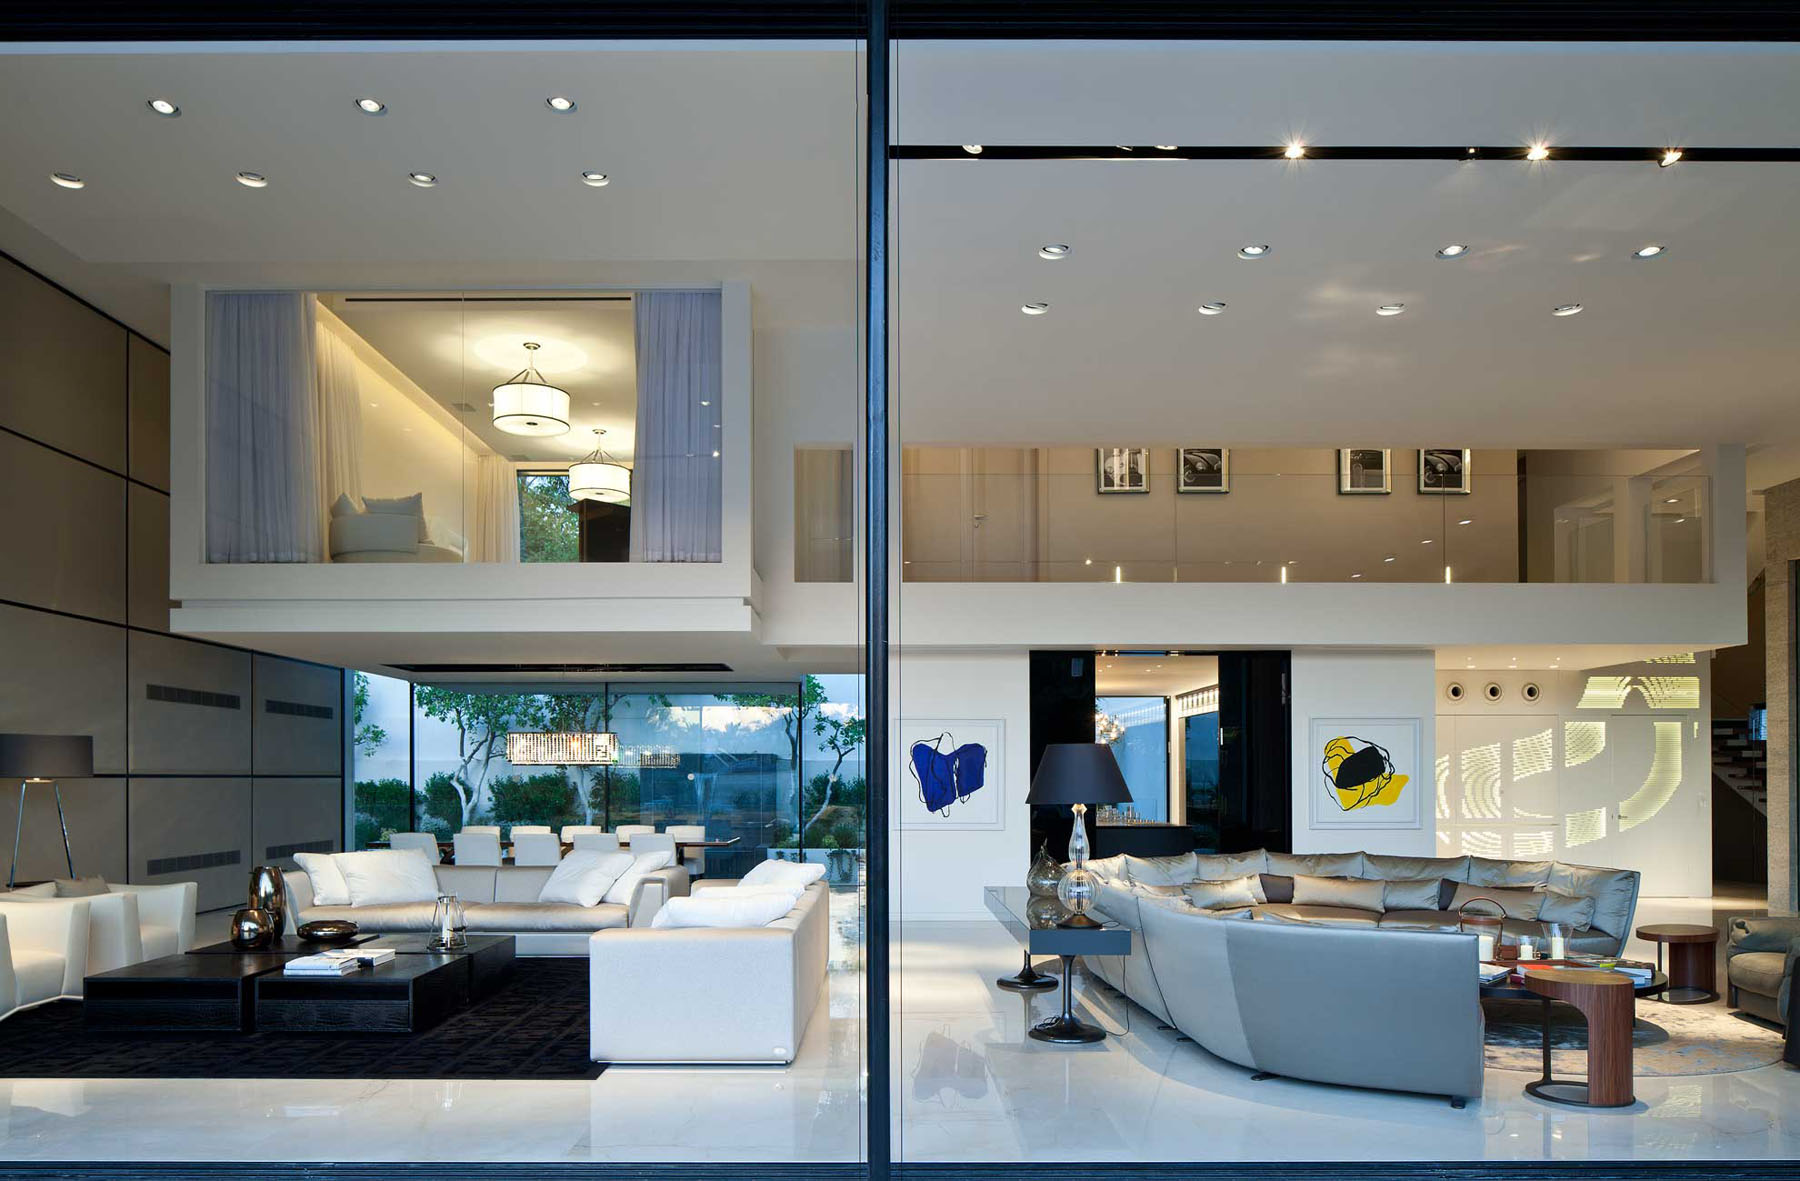 pictures of small living rooms with fireplaces interior decorating tips room herzliya-cube-house_4